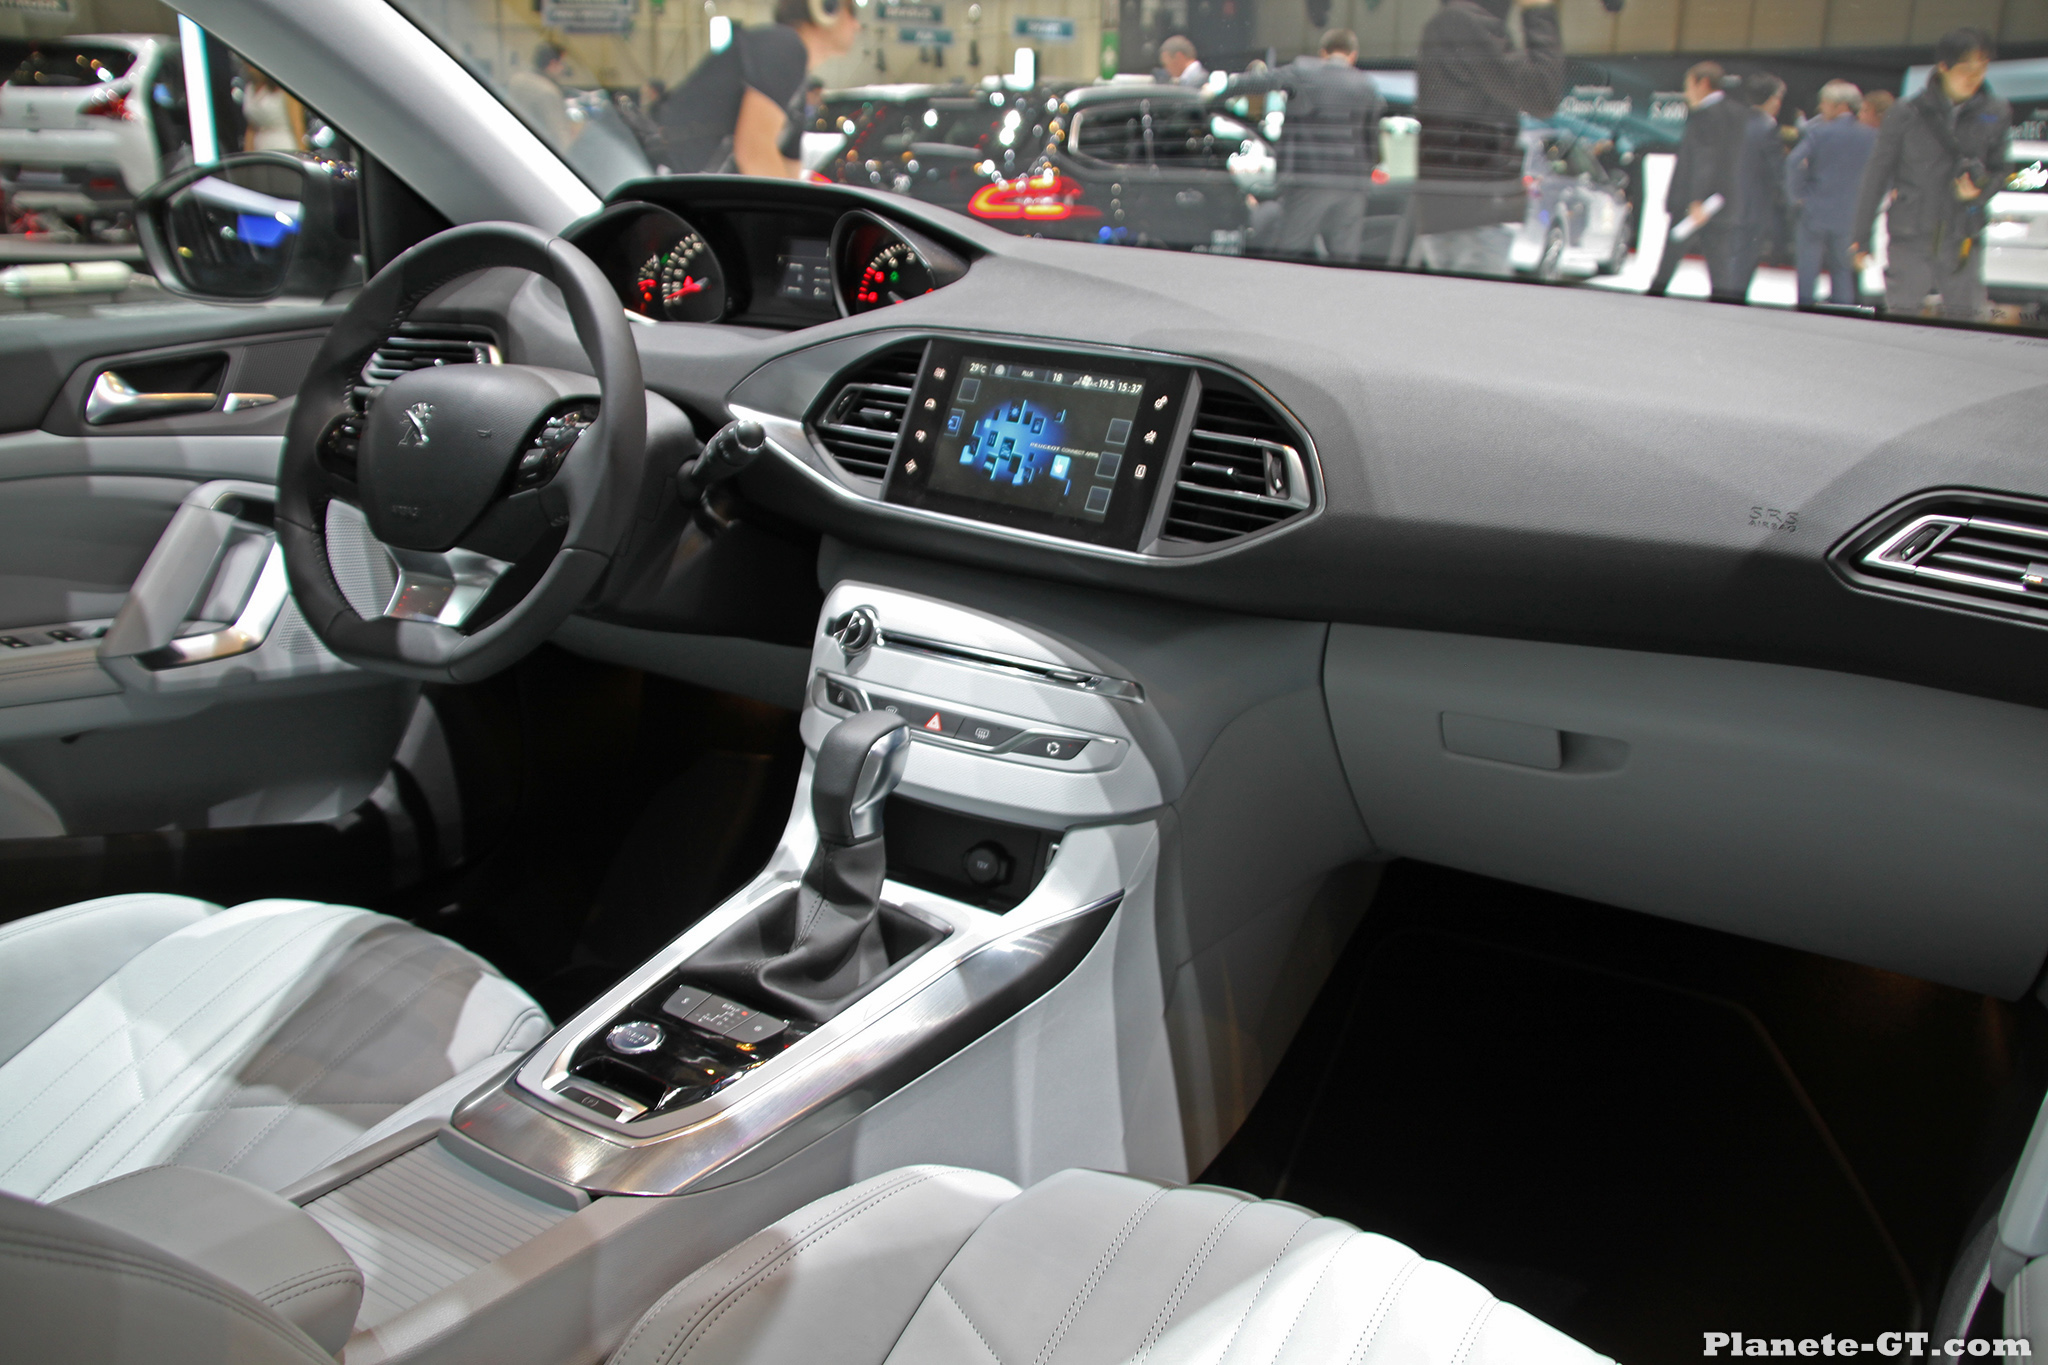 Geneve 2014 peugeot 308 sw interieur 03 plan te for Interieur peugeot 308